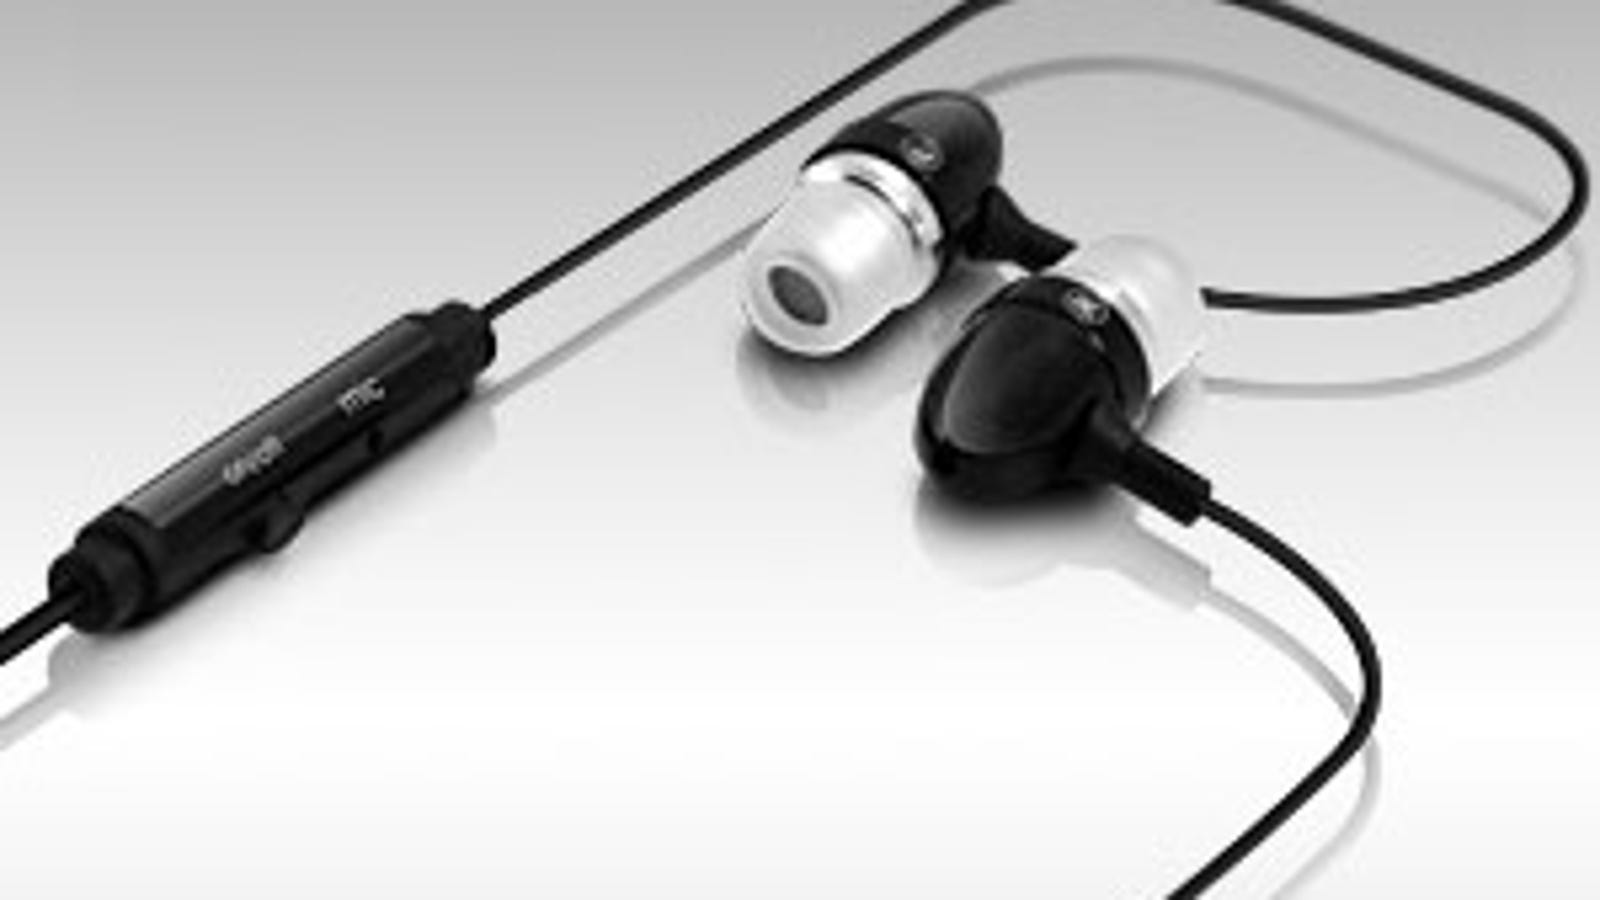 skullcandy earbuds titan - RadTech ProCable iPhone Headphones Are a Cheap Alternative